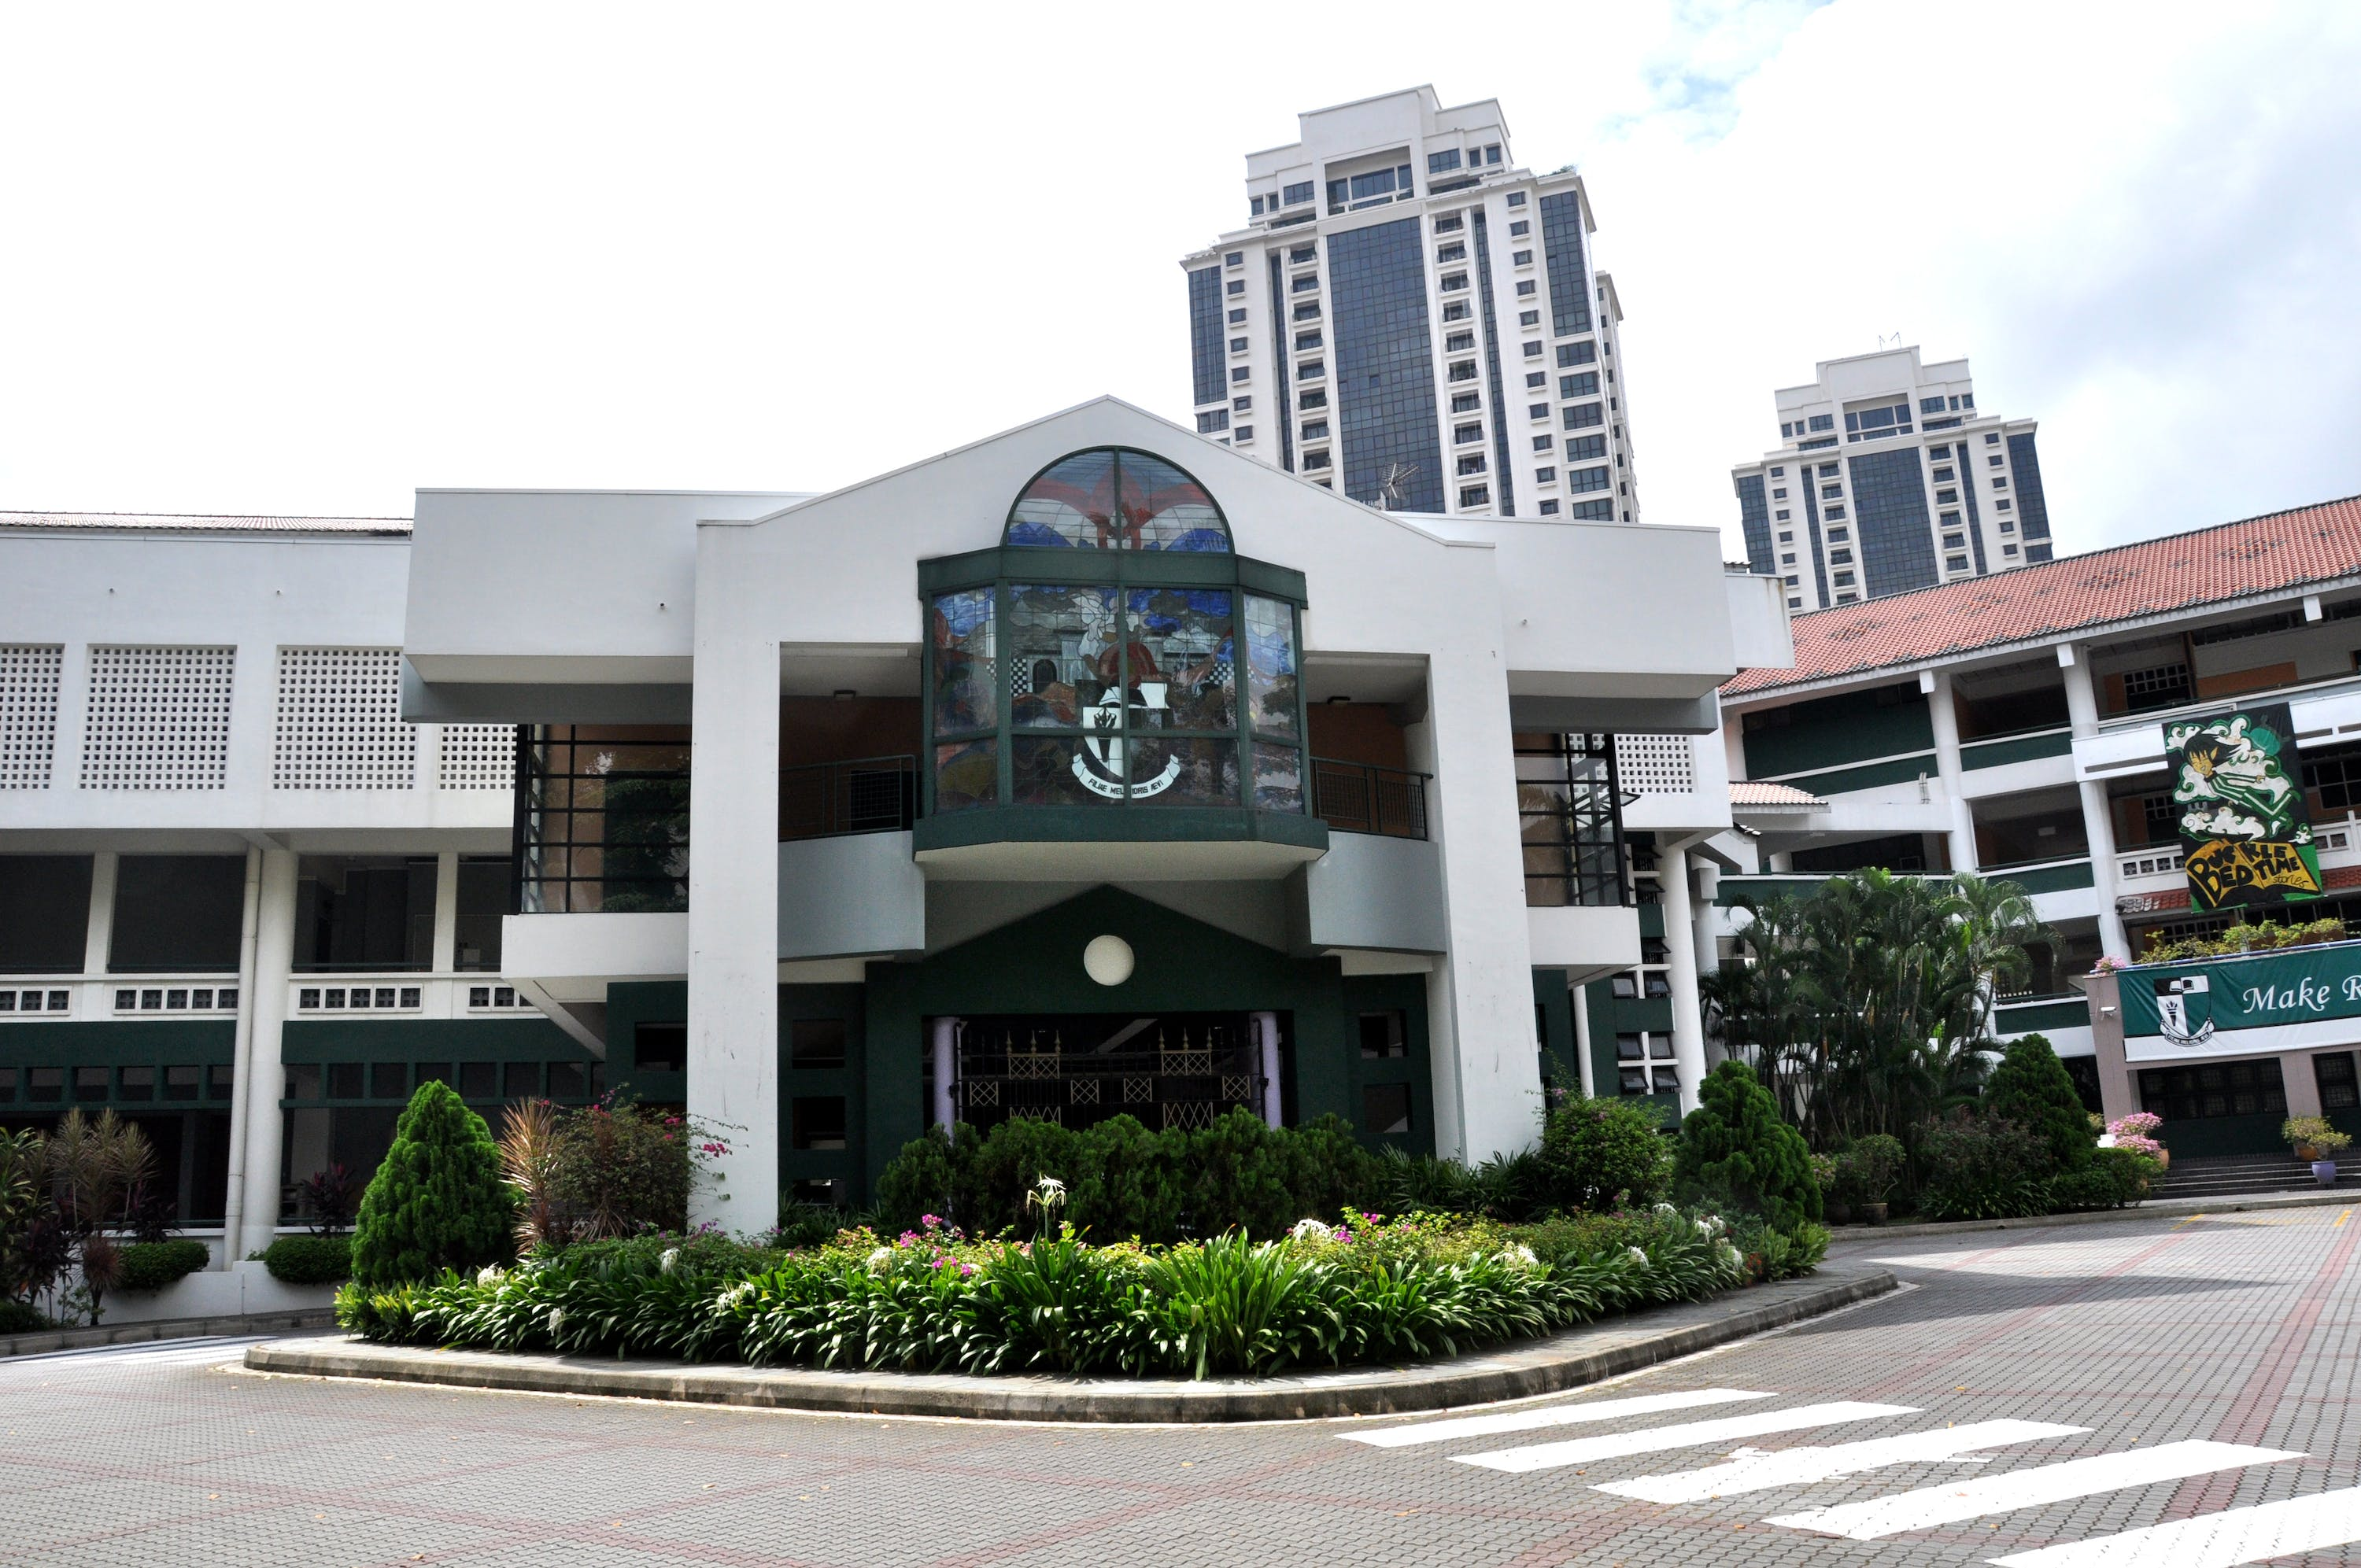 Singapore Chinese Girl's School is also a potential education choice for Midwood residents, as it is along Bukit Timah.